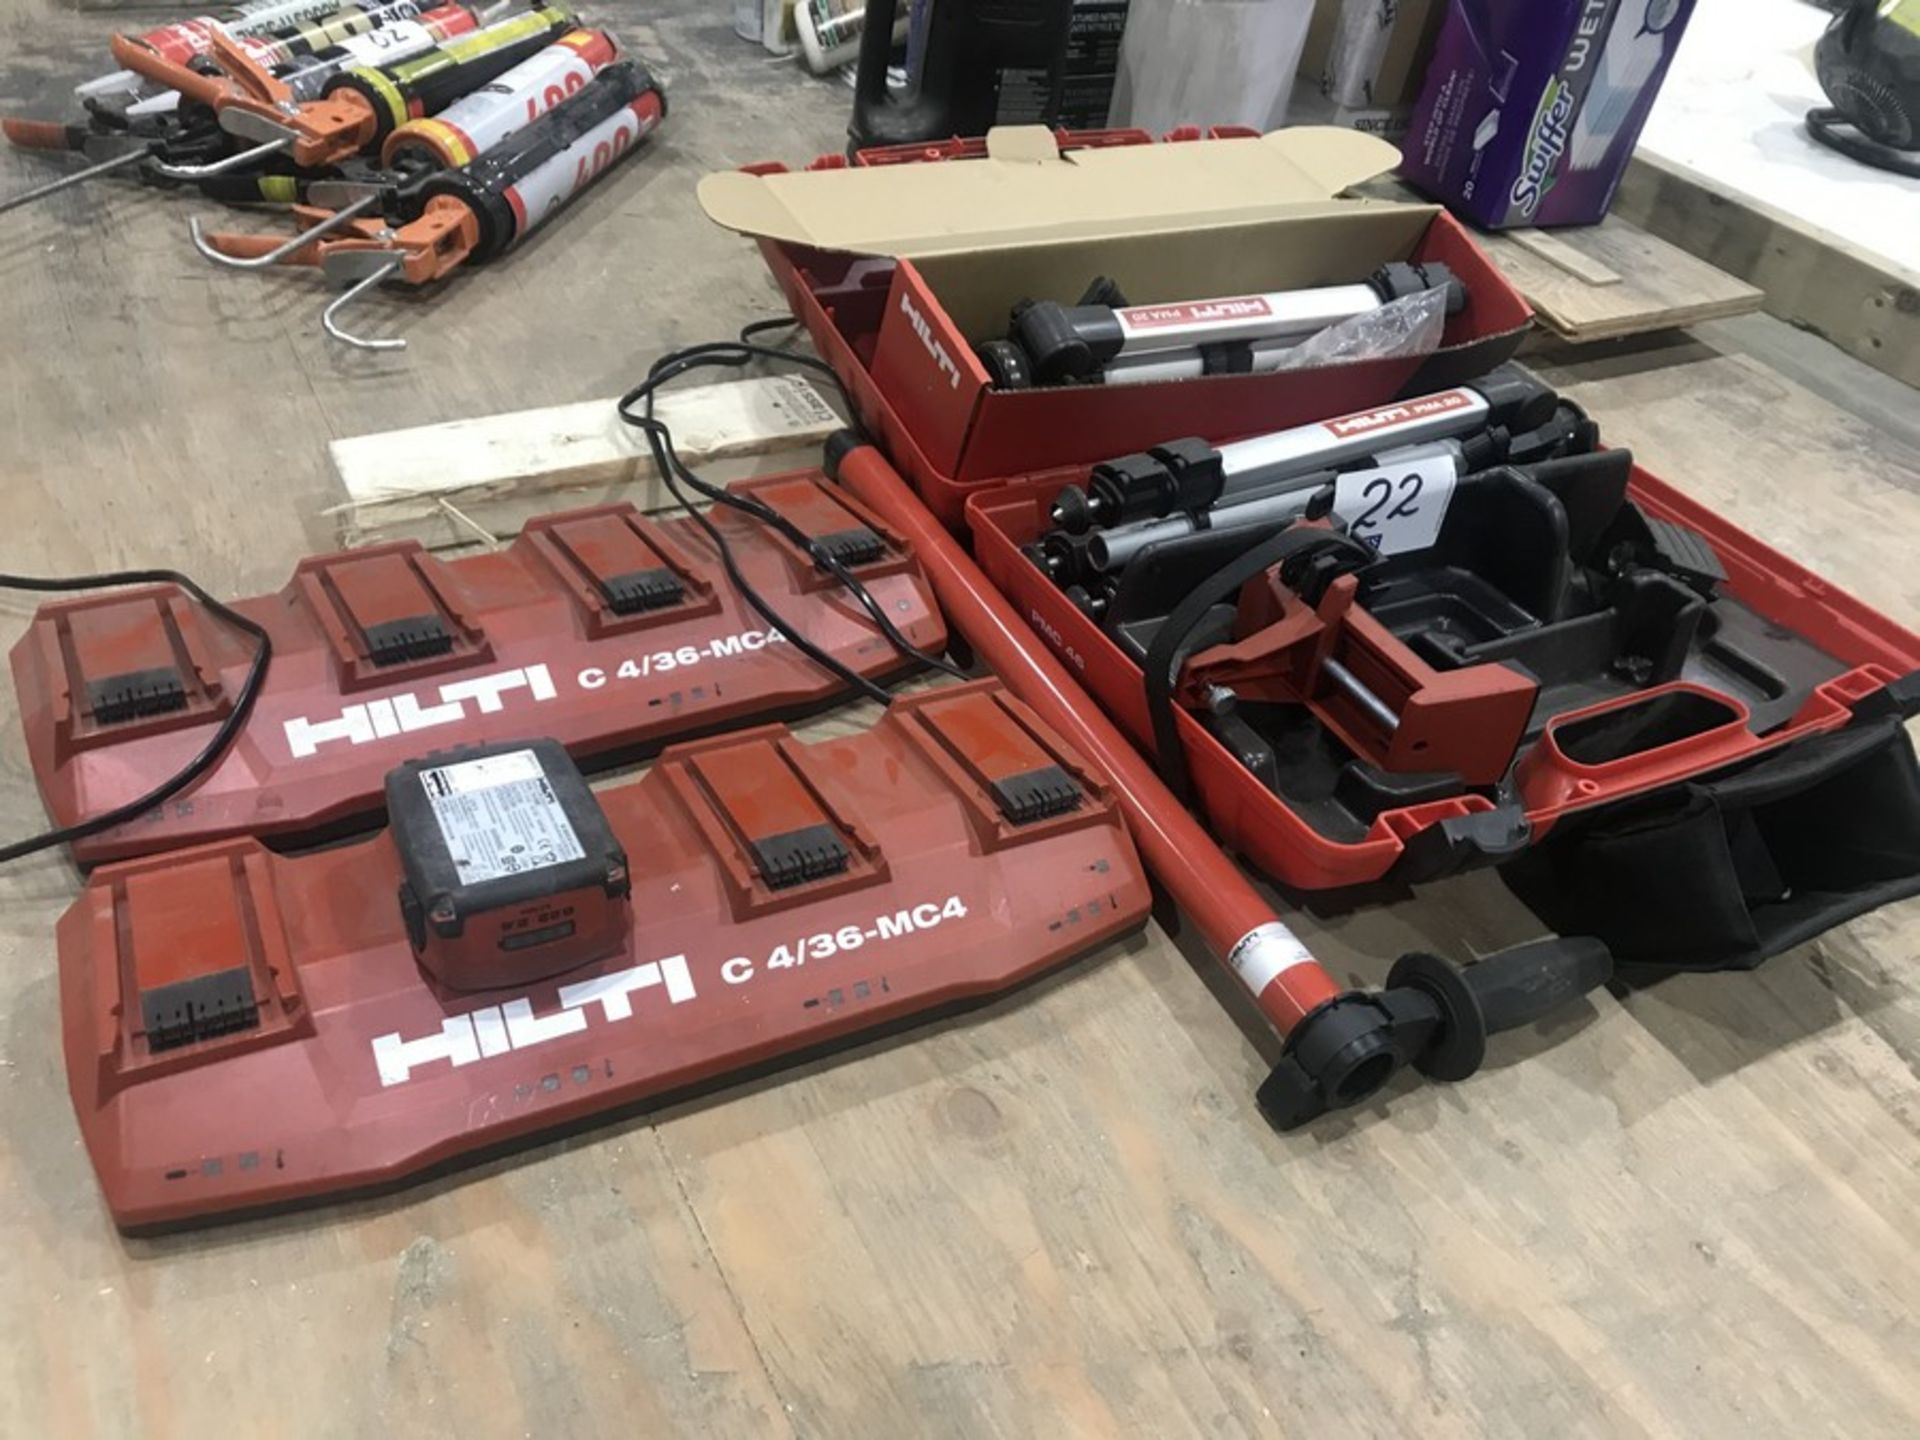 Lot 22 - 2 HILTI GANG CHARGERS, 2 TRIPODS & BATTERY